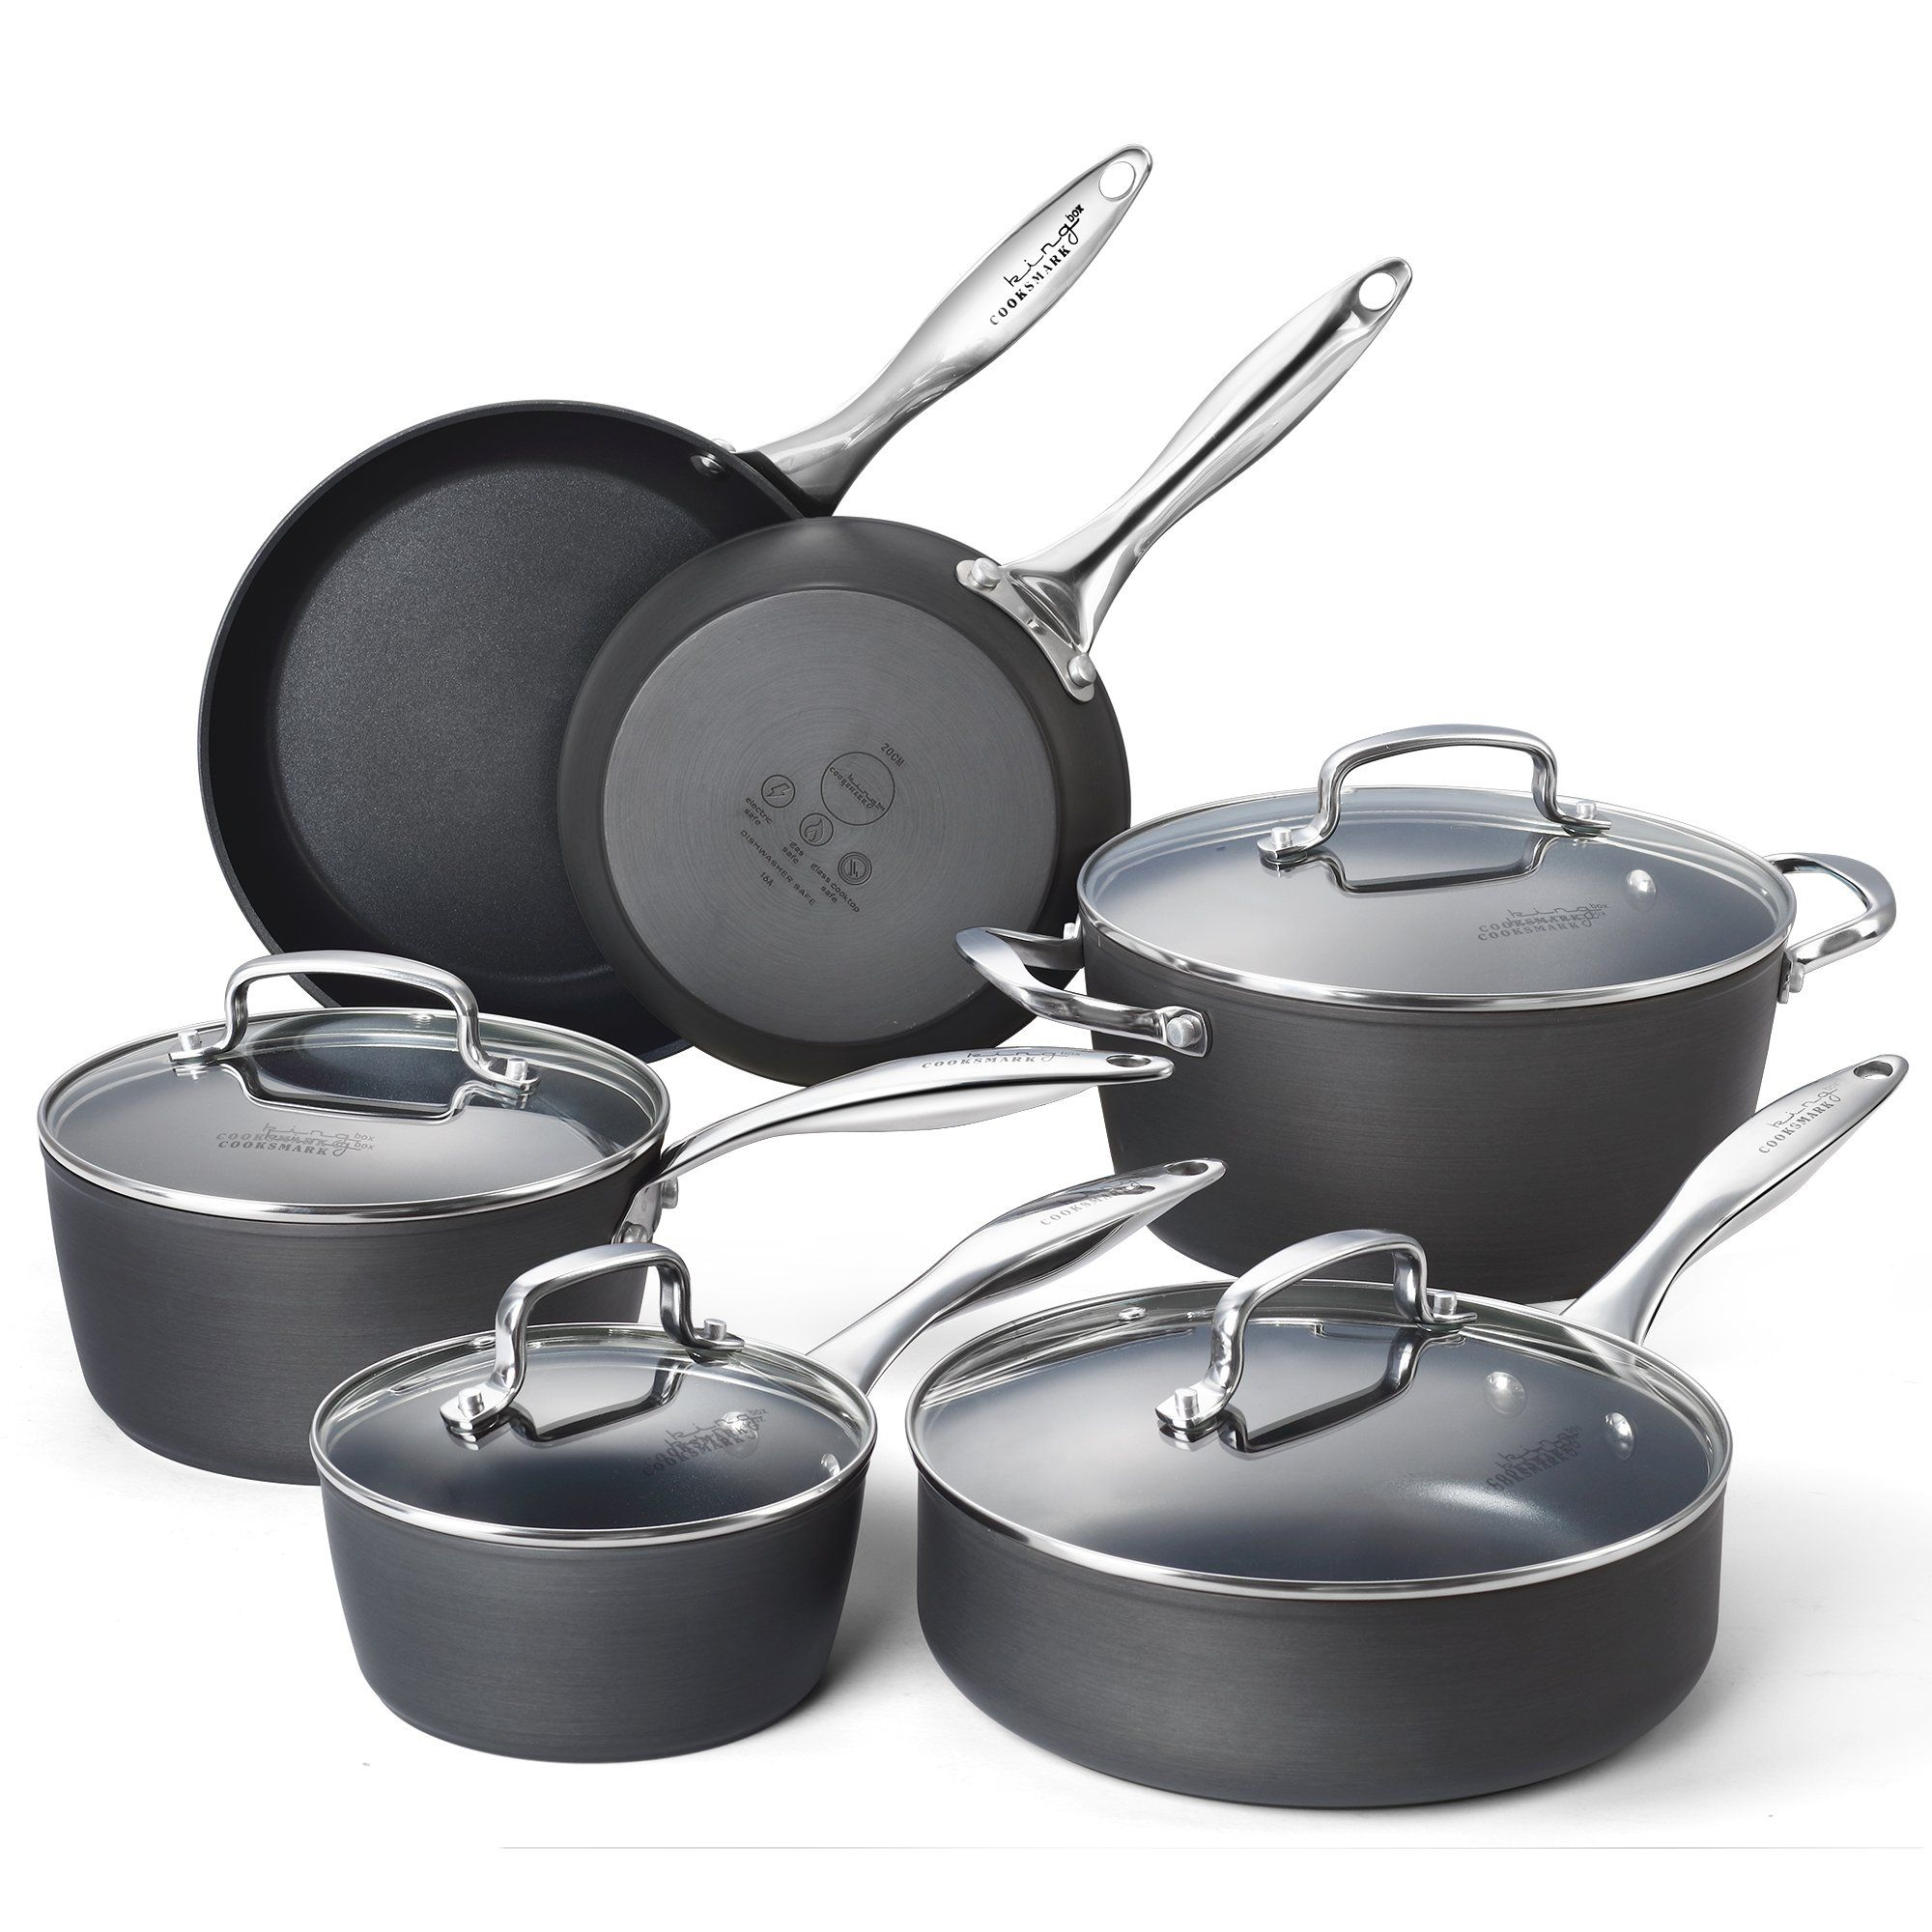 Cooksmark Kingbox Hard Anodized Aluminum Nonstick Cookware Set 10 Piece Grey Cookware Set Nonstick Cookware Set Pots And Pans Sets